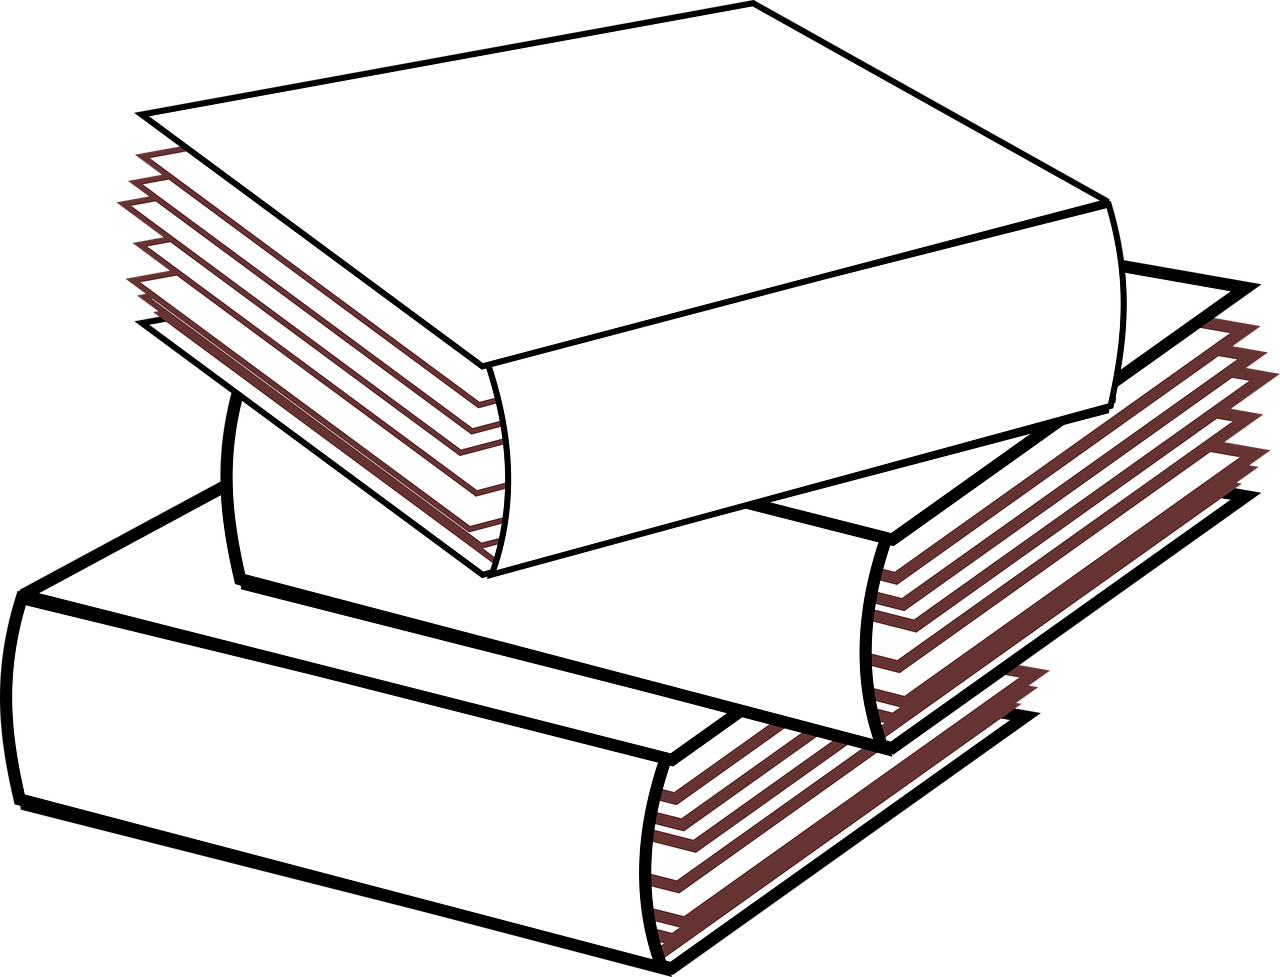 Download free photo of Stacked 3 books no color,stacked.